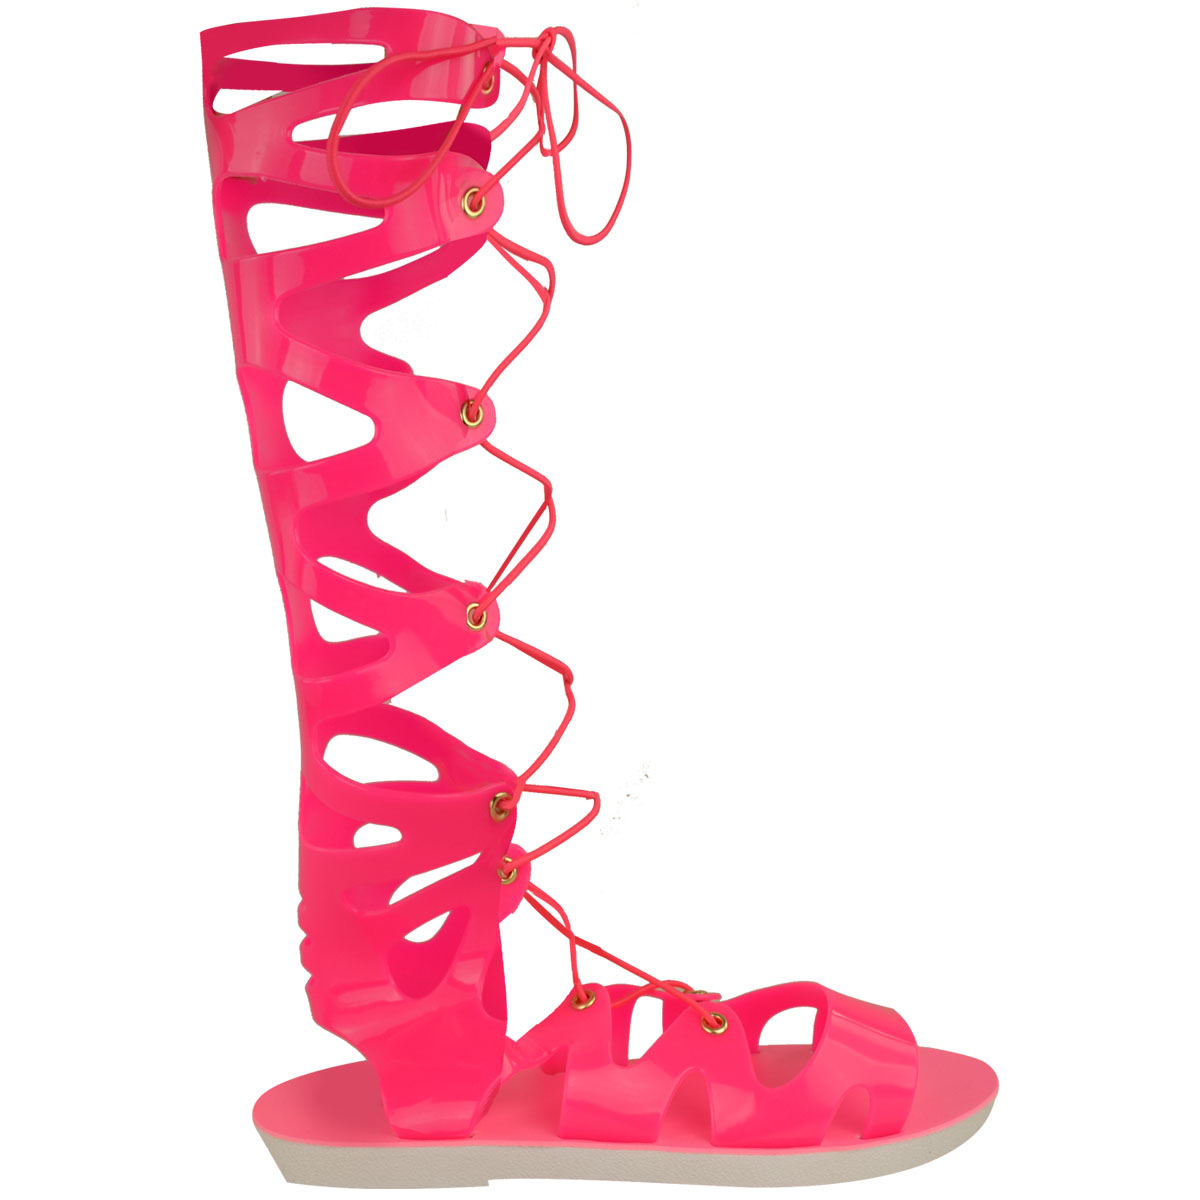 Womens-Ladies-Flat-Knee-High-Gladiator-Sandals-Strappy-Beach-Cut-Out-Boots-Size thumbnail 7